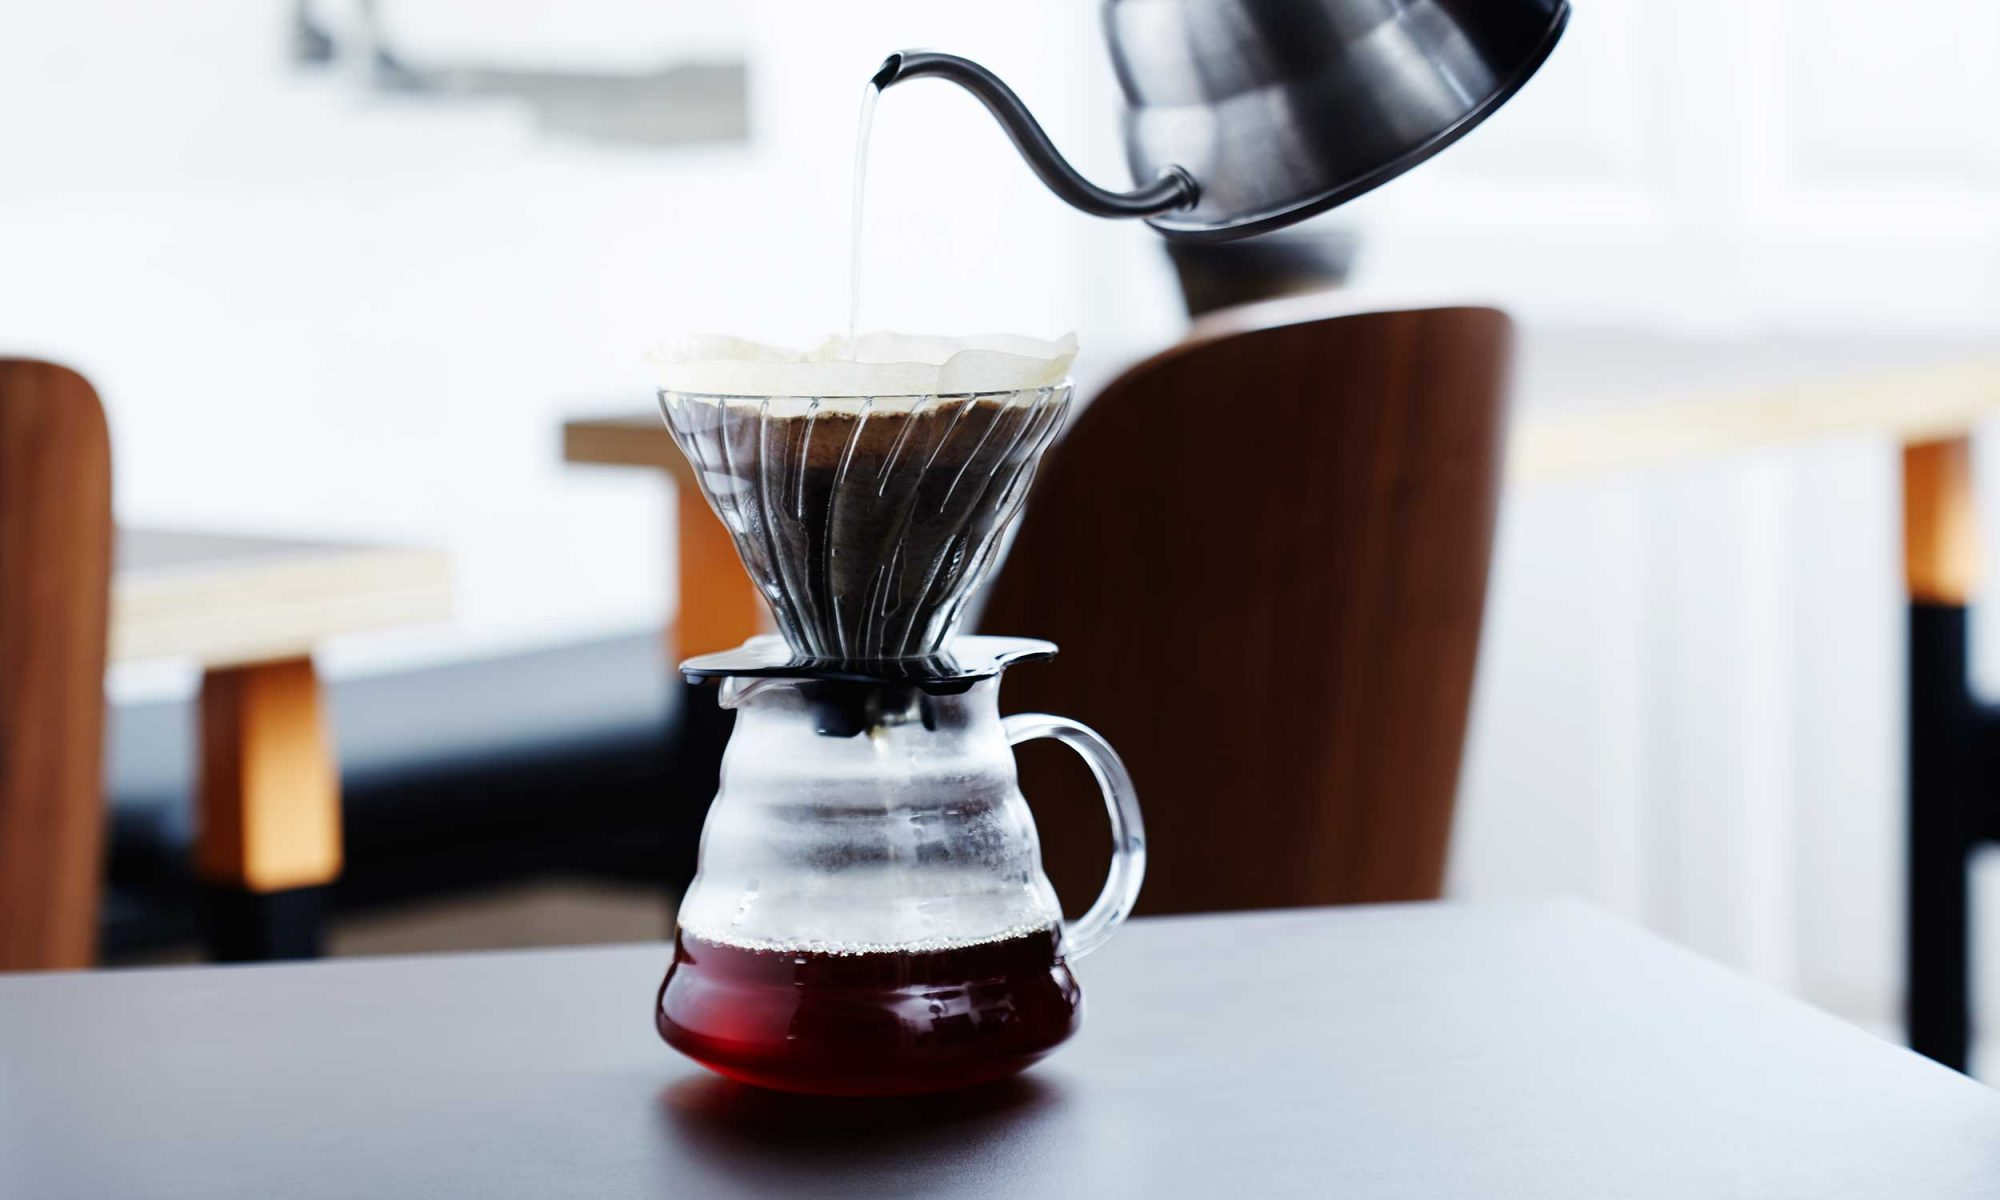 EC: A Beginner's Guide to Making Pour-Over Coffee at Home